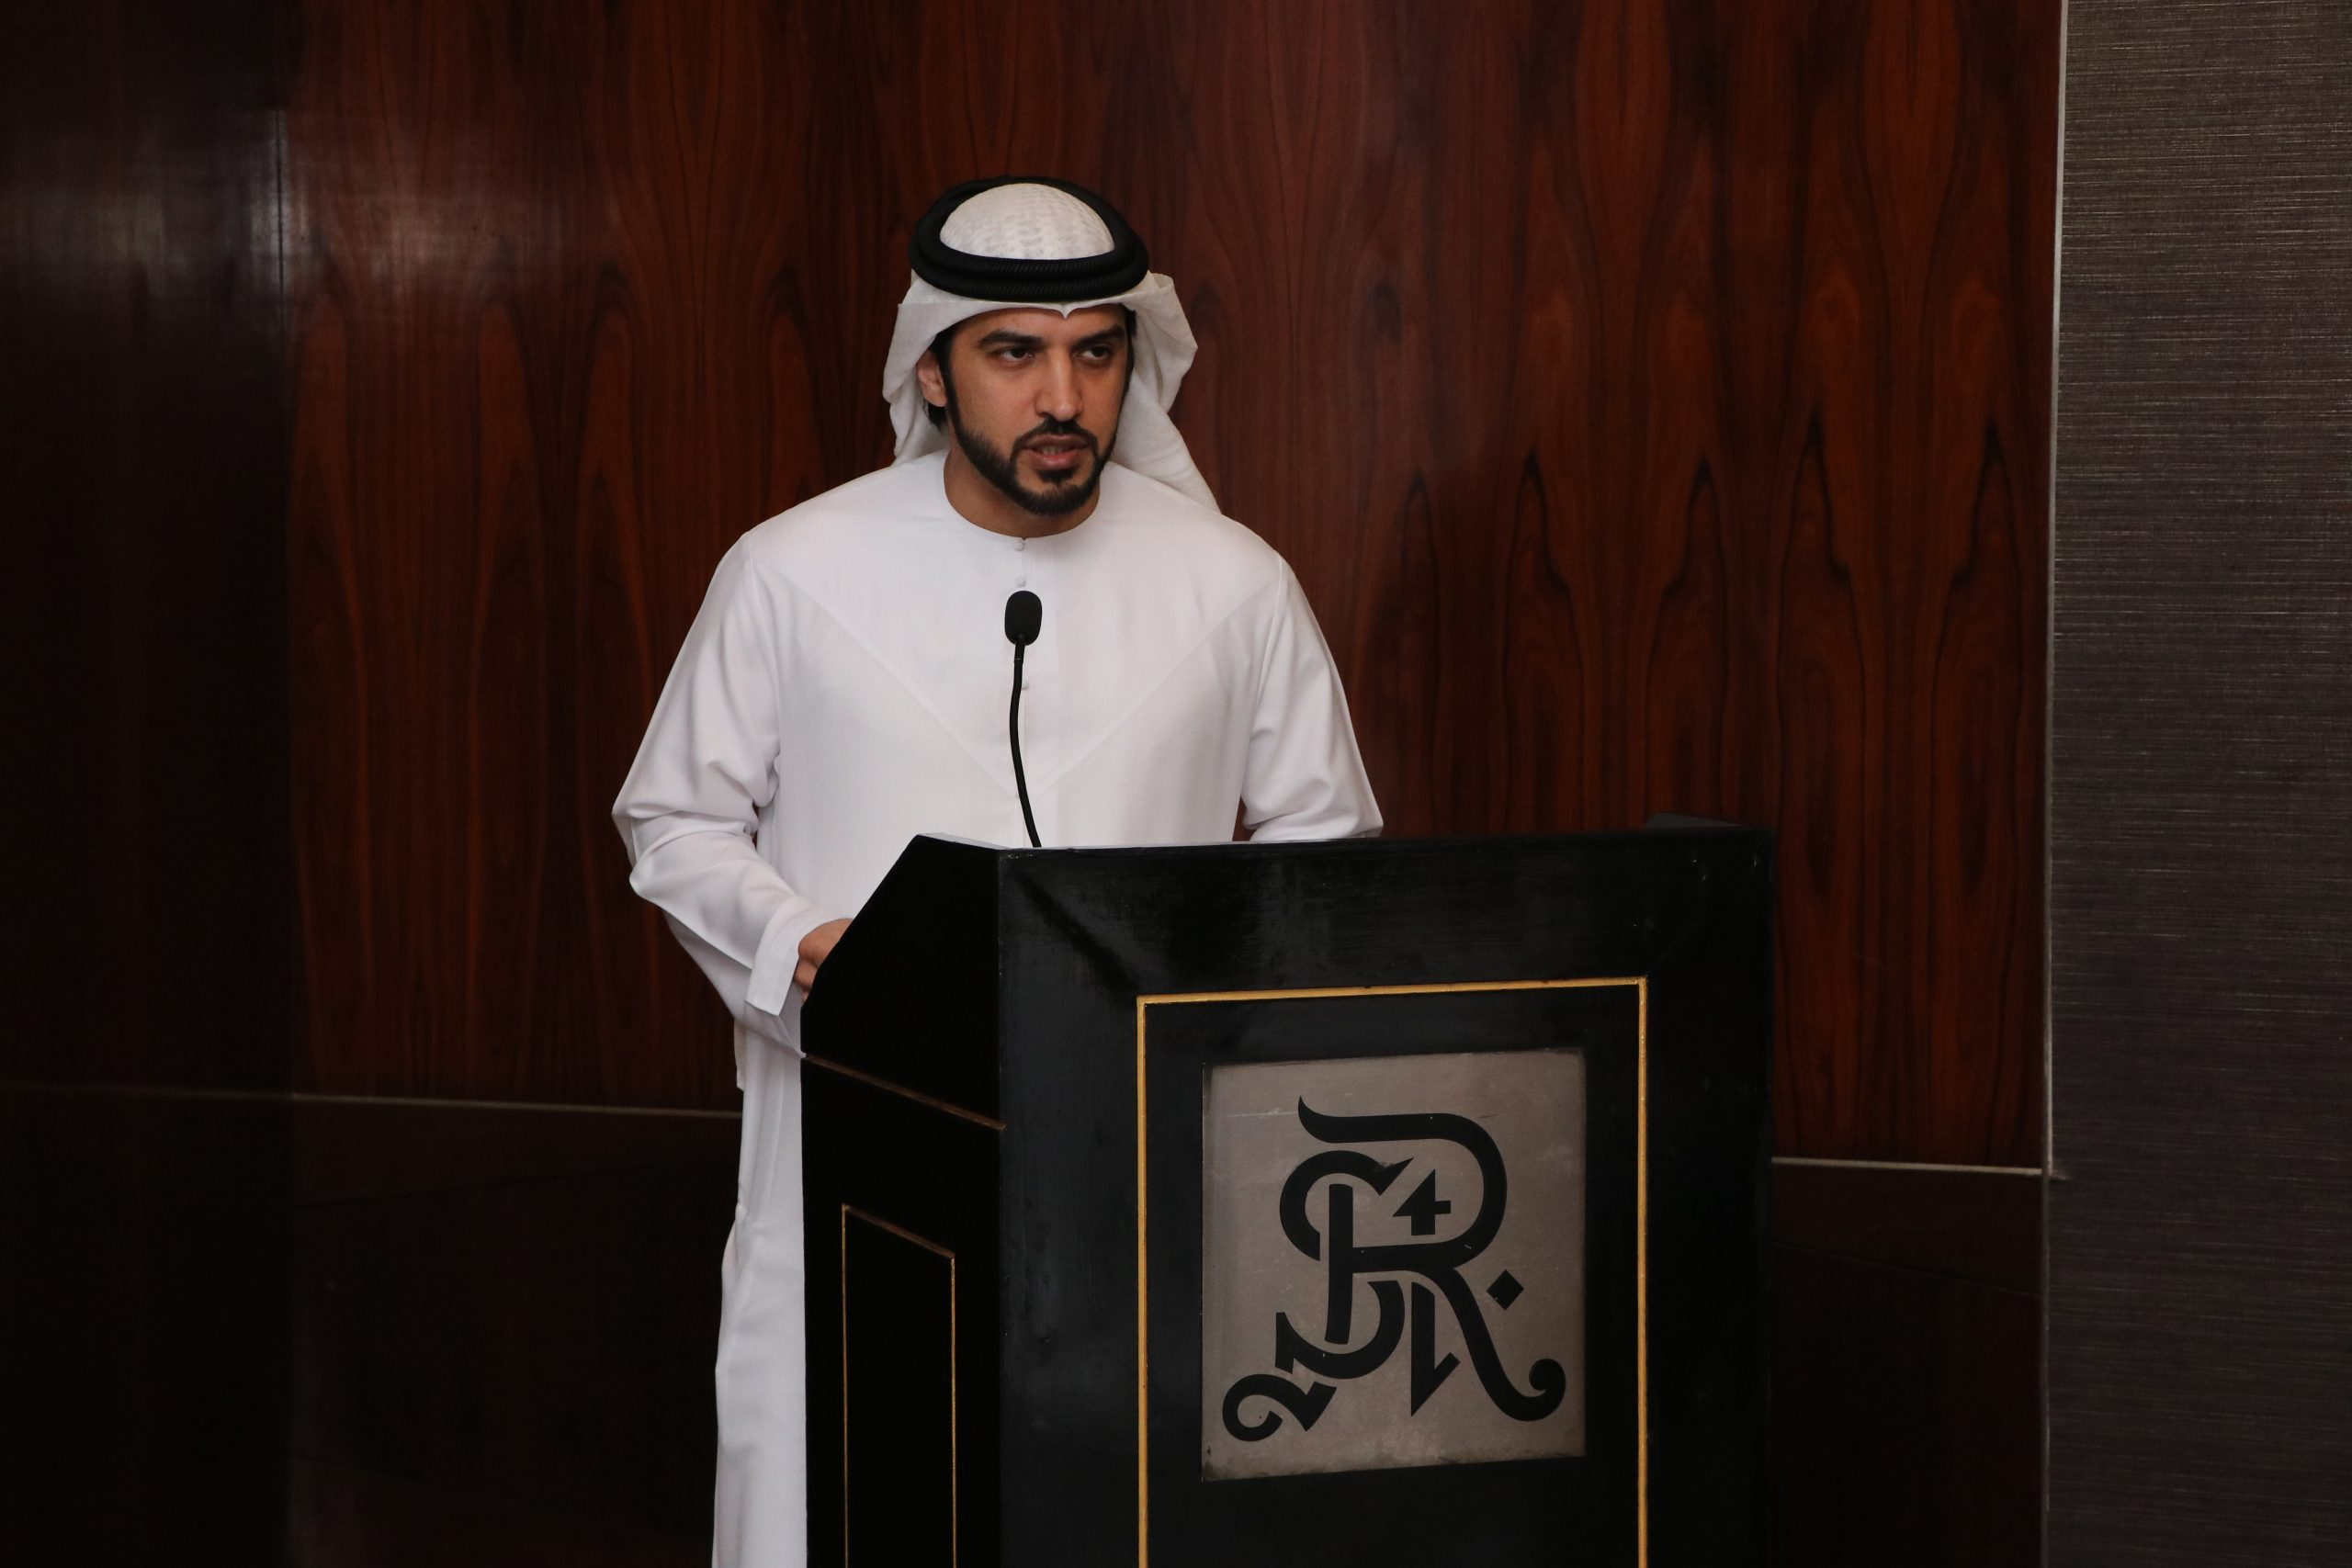 Abu Dhabi Marks Indian Market Milestones of 8.2% Growth with New Initiatives